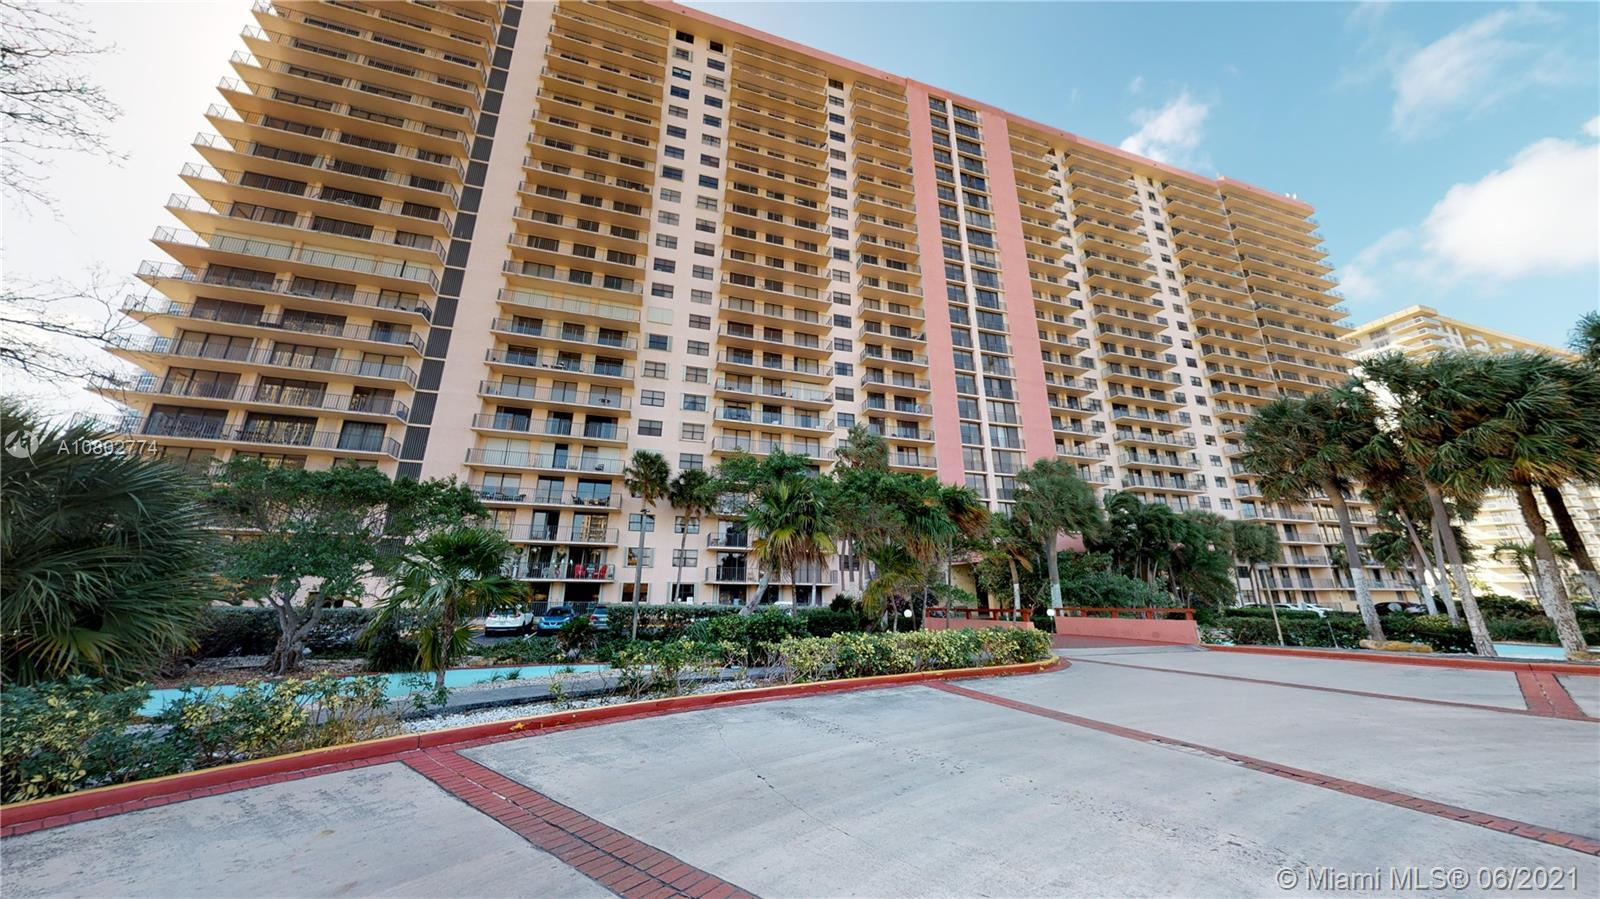 Winston Towers is located in the heart of Sunny Isles Beach. Across the street from the beach and se